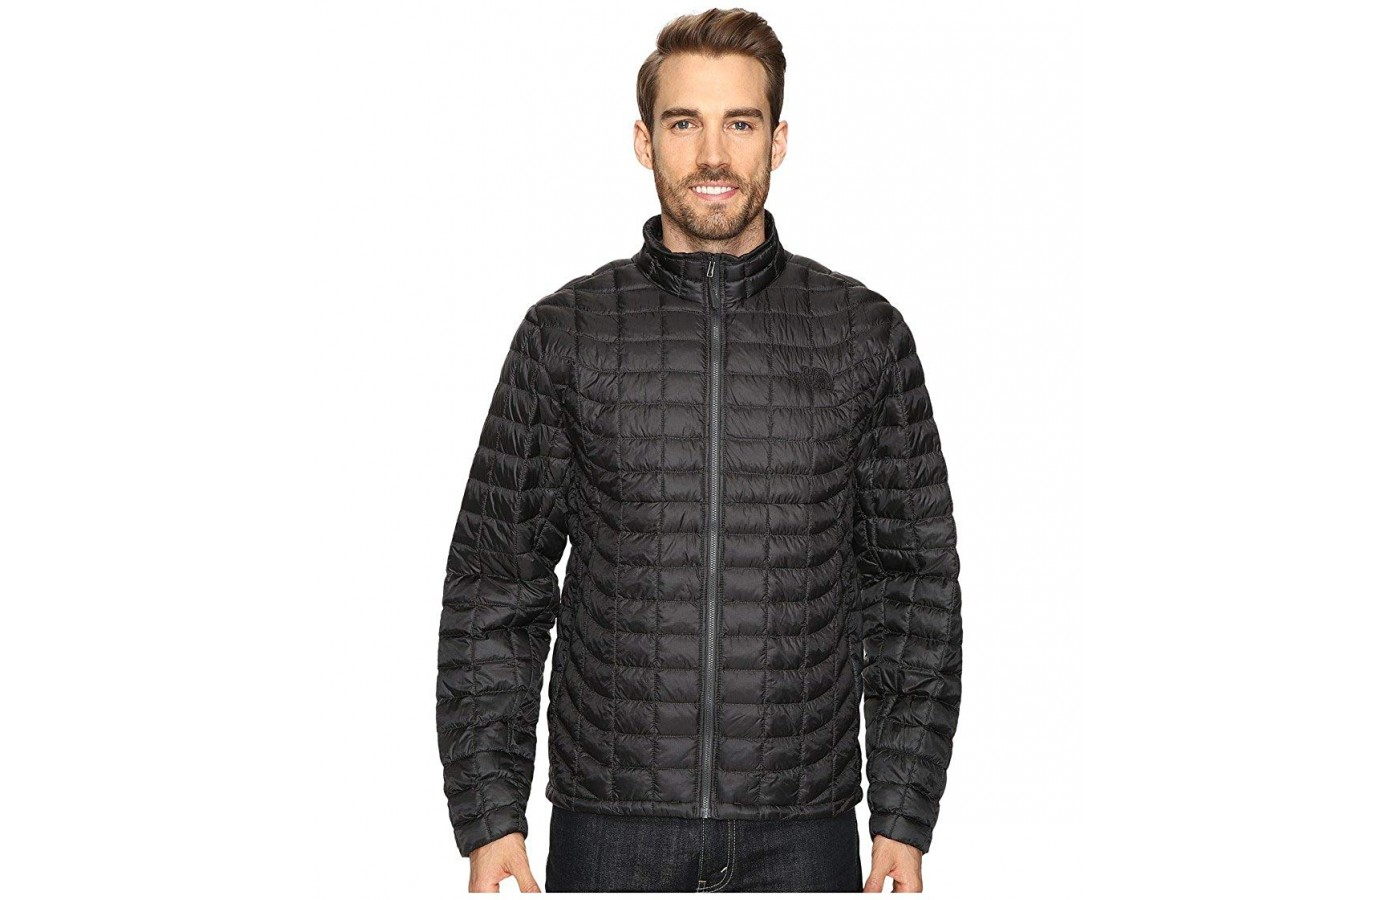 The North Face Thermoball offers an insulated quilted design in order to keep the wearer warm as well.